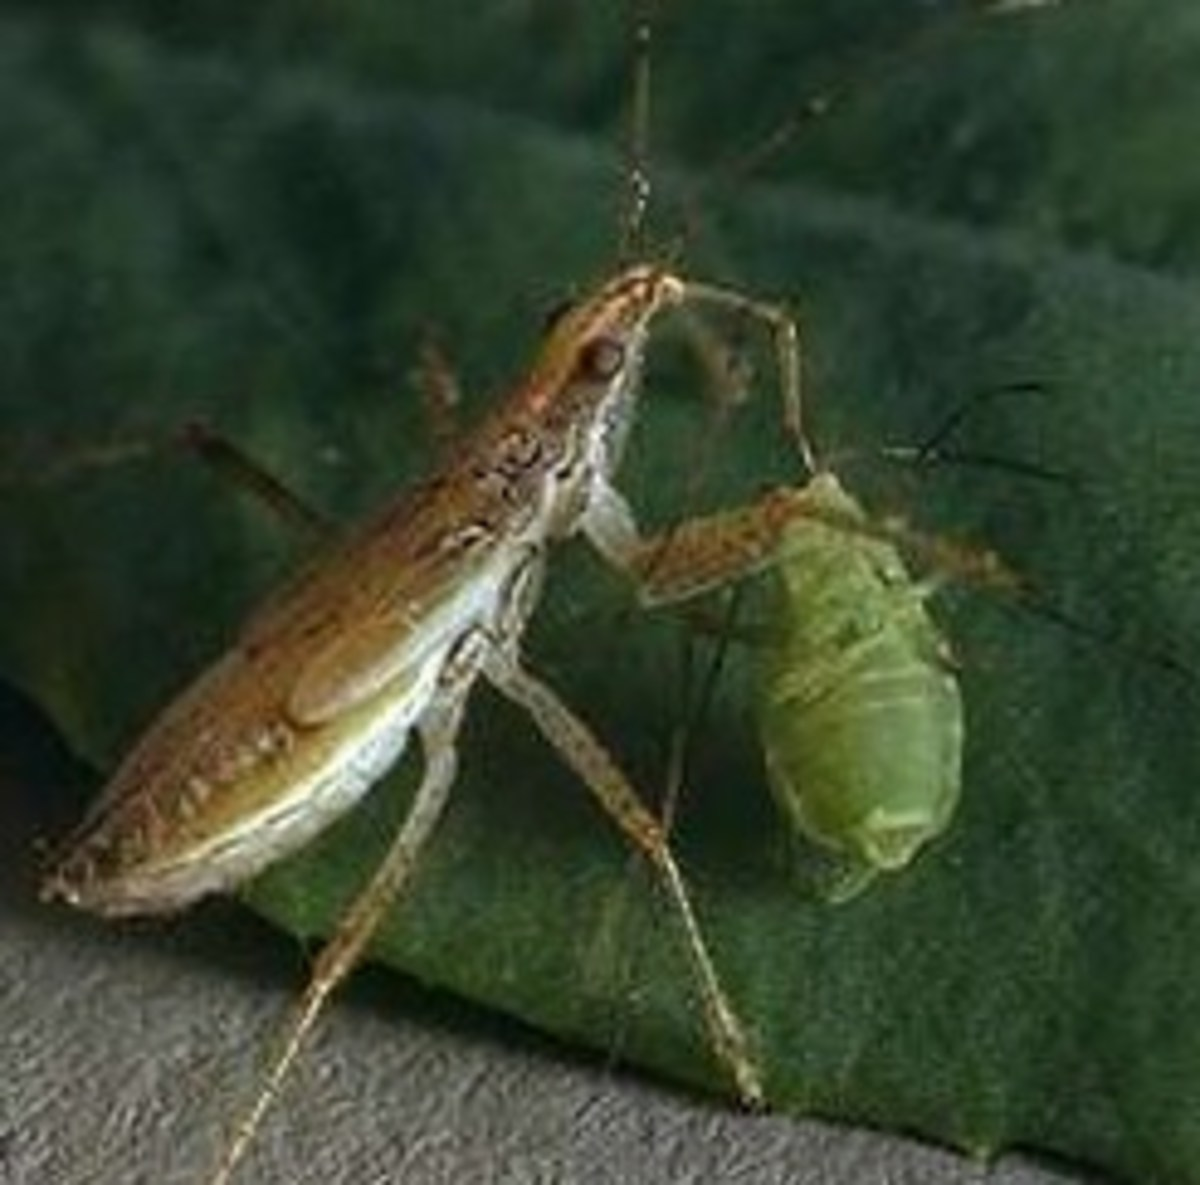 Adult damsel bugs as well as nymphs are ravenous predators.